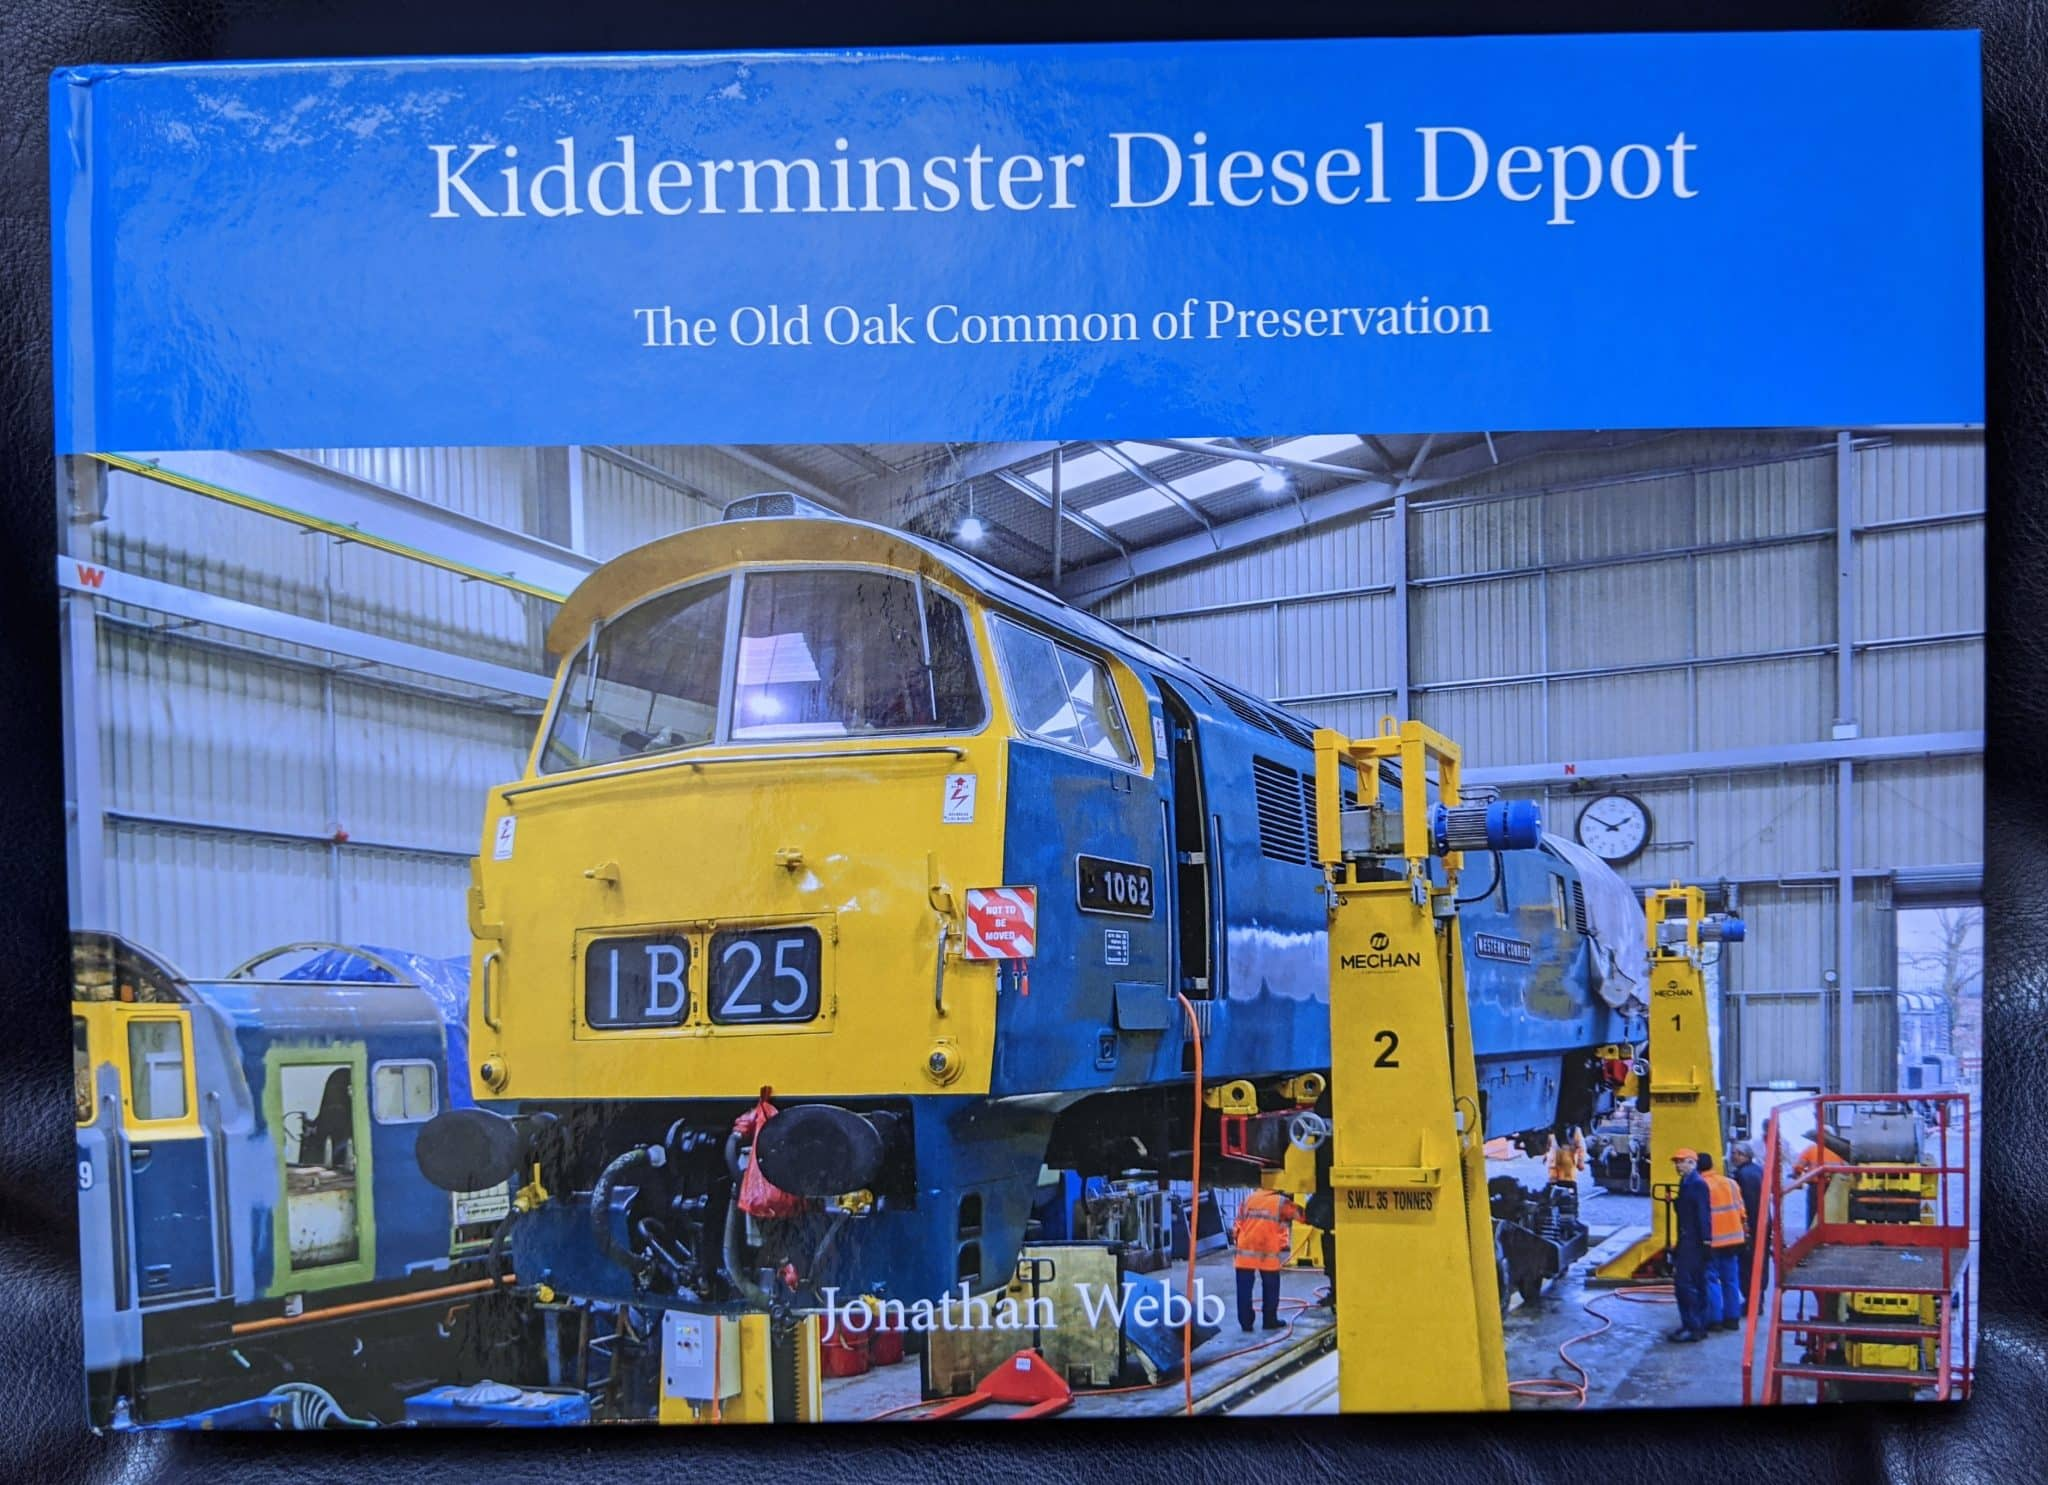 Kidderminster Diesel Depot - The Old Oak Common of Preservation book